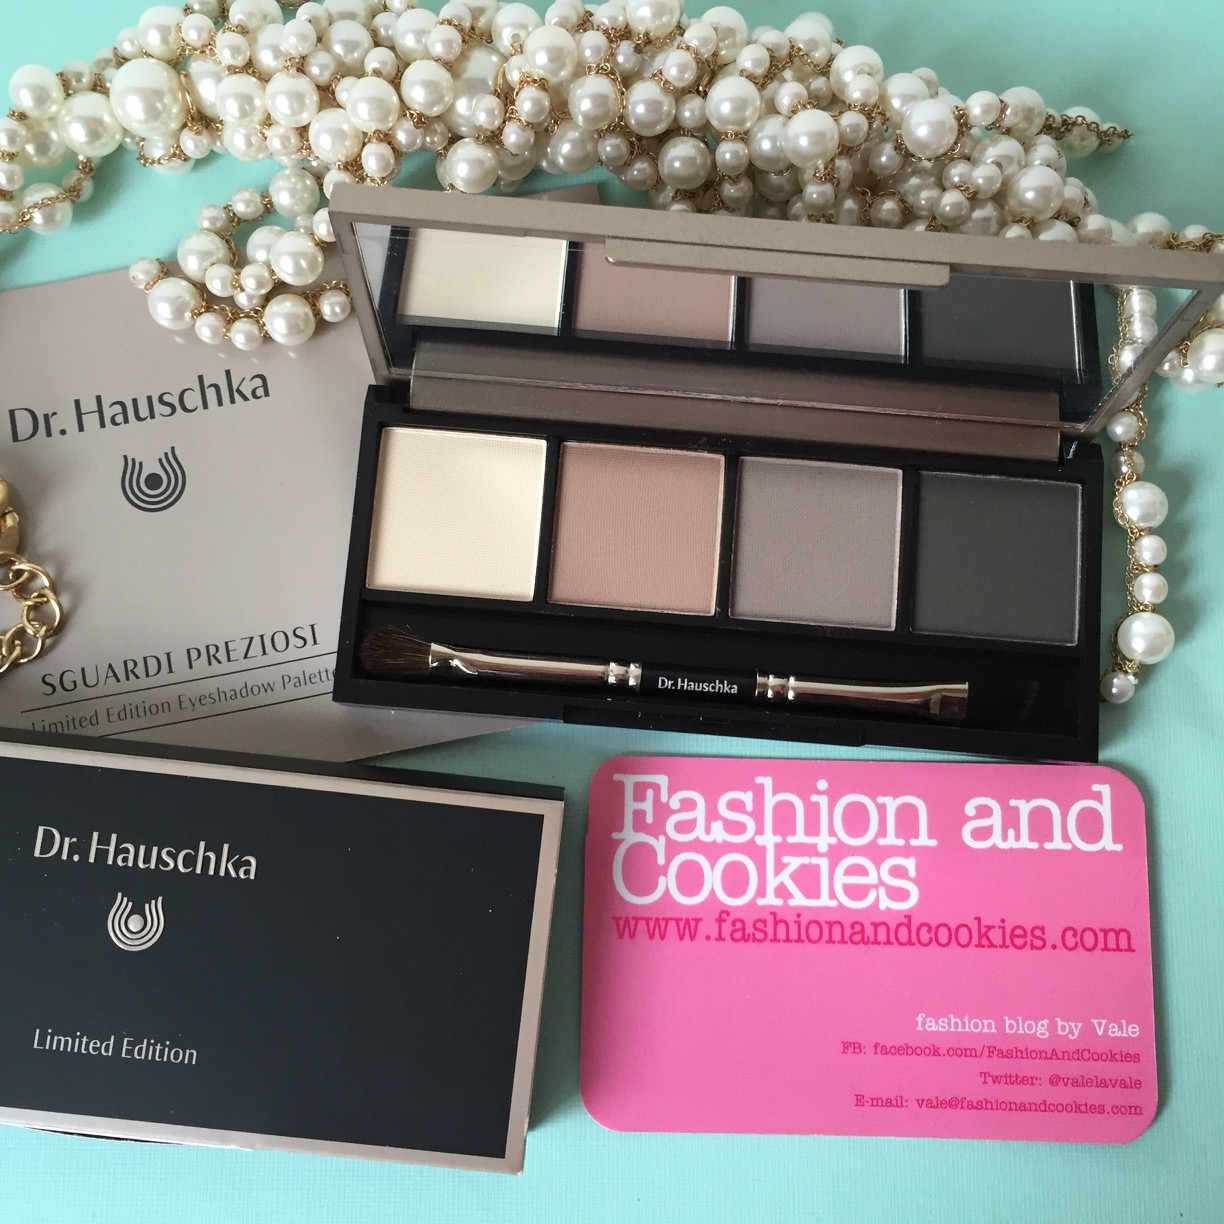 Dr. Hauschka Limited Edition palette on Fashion and Cookies fashion and beauty blog, fashion blogger style